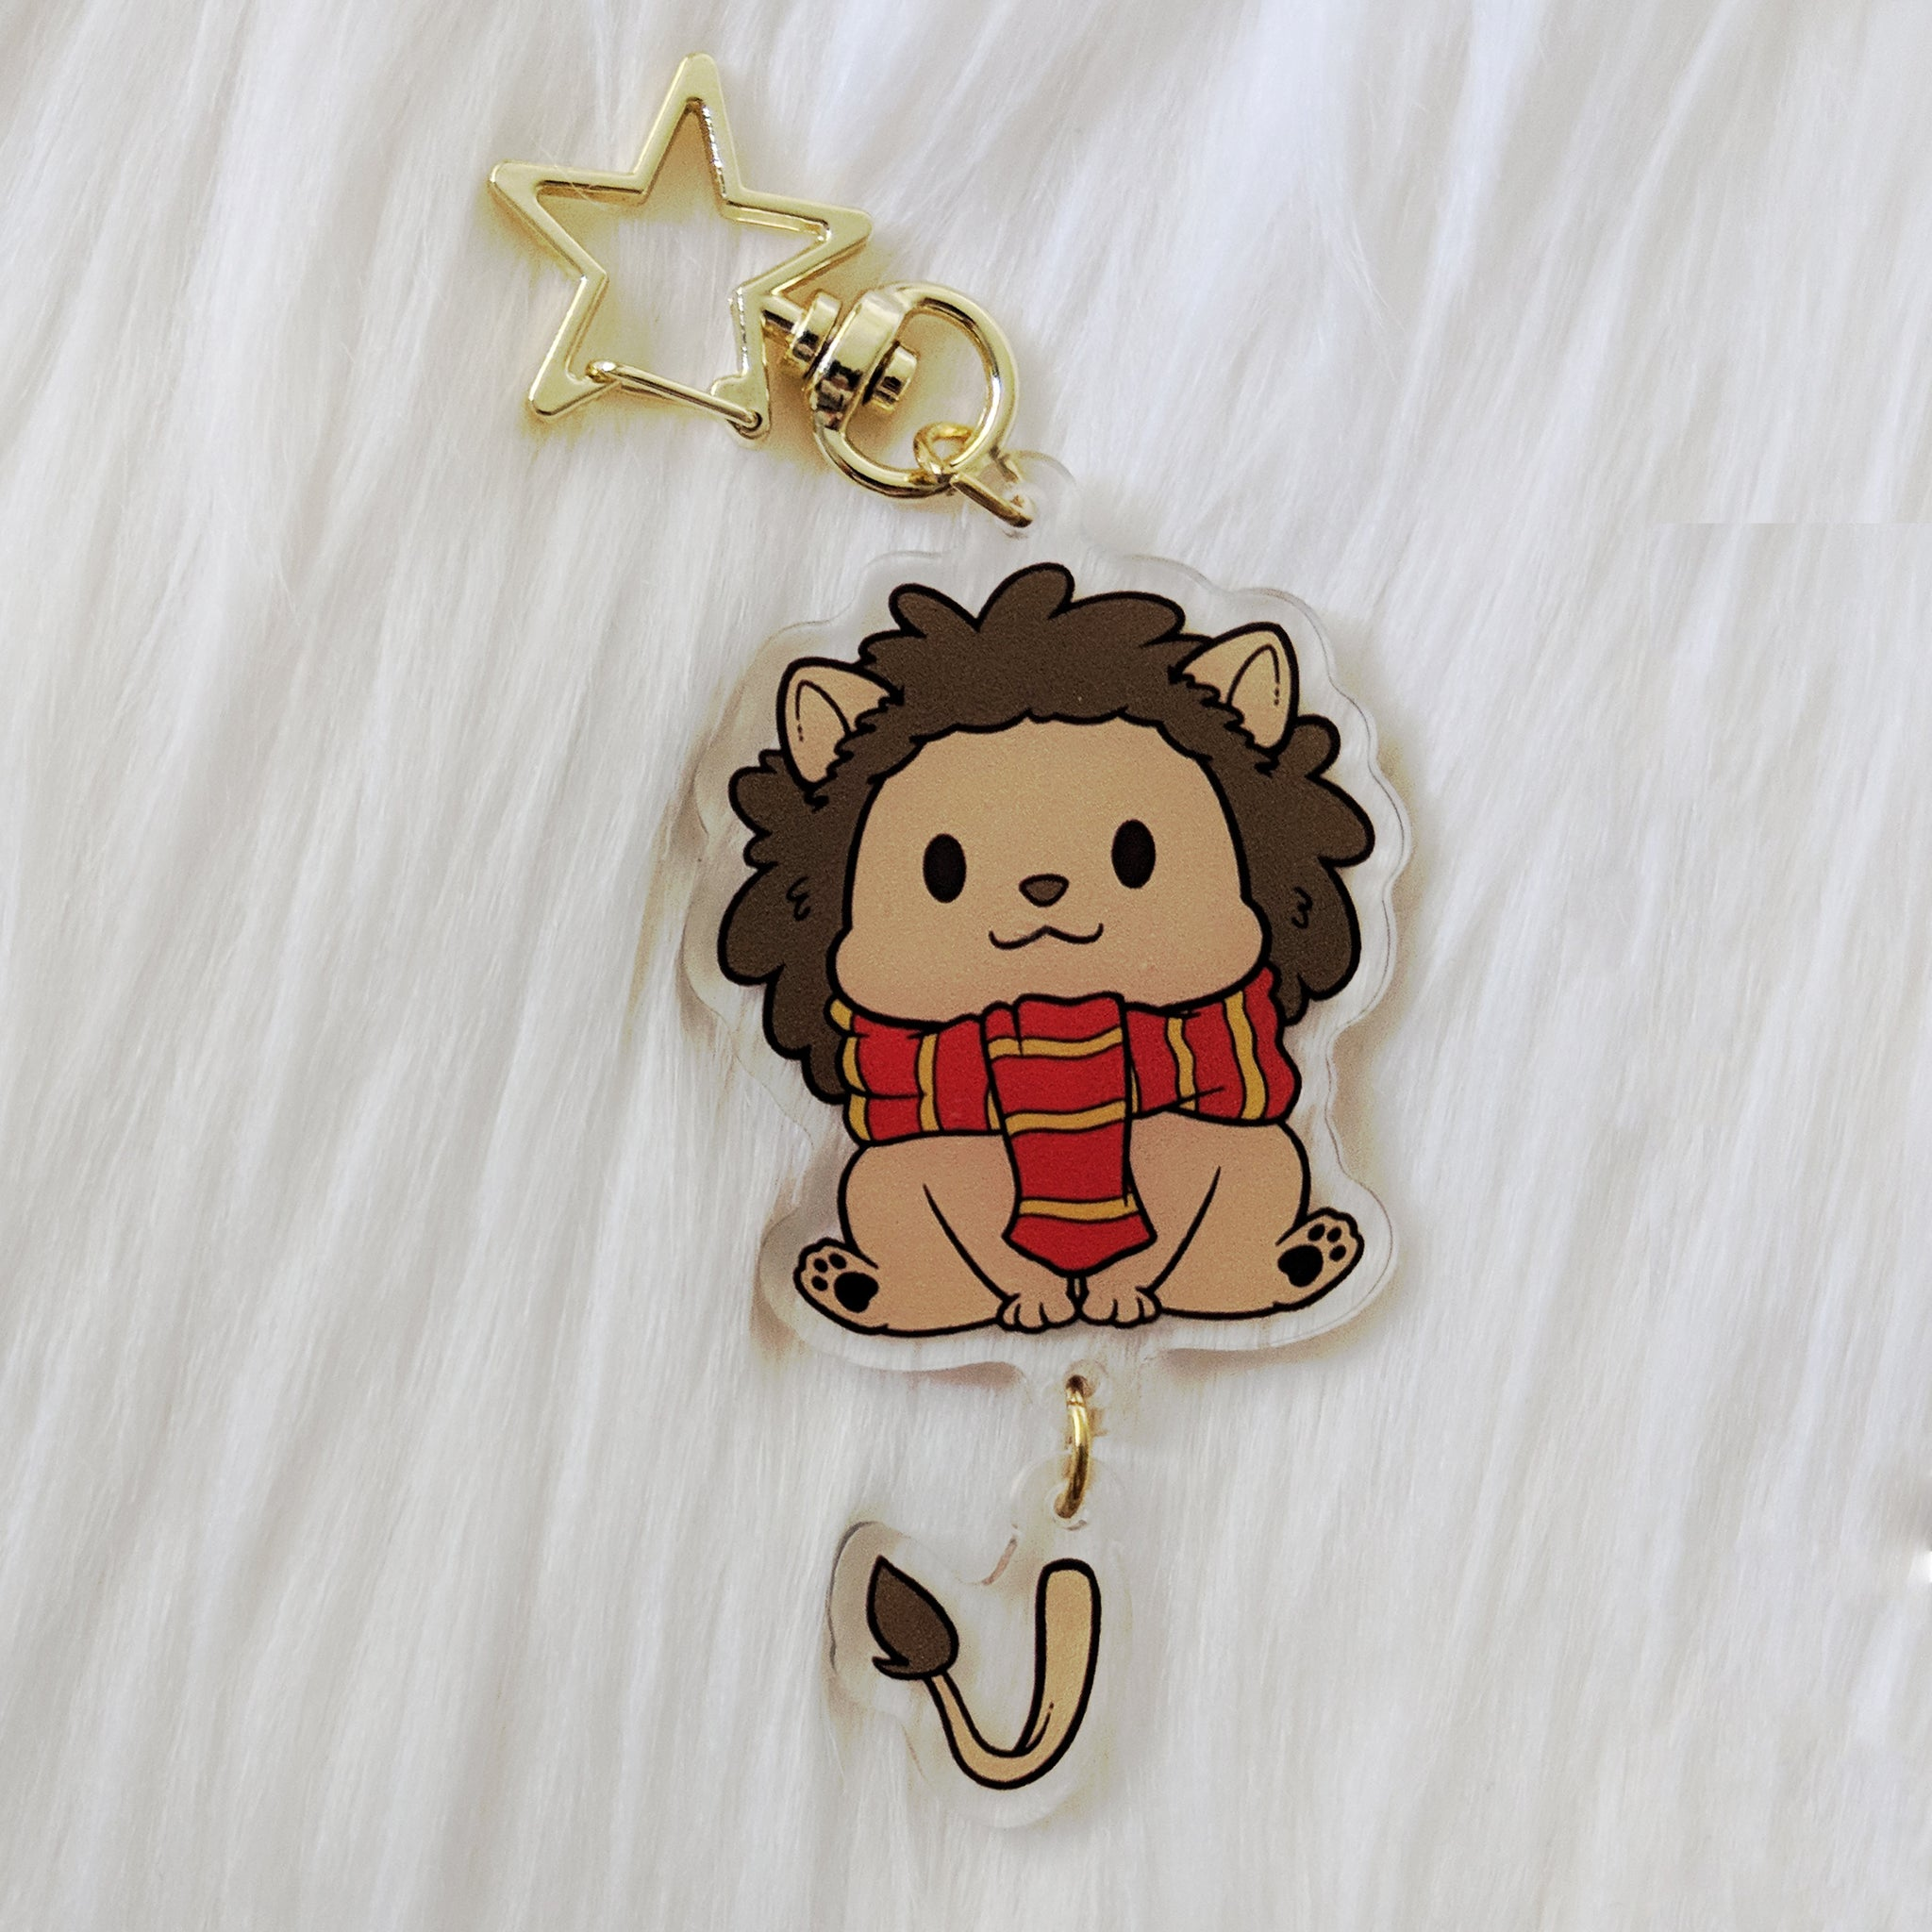 House of Lion, Dangle Tail Acrylic Charm